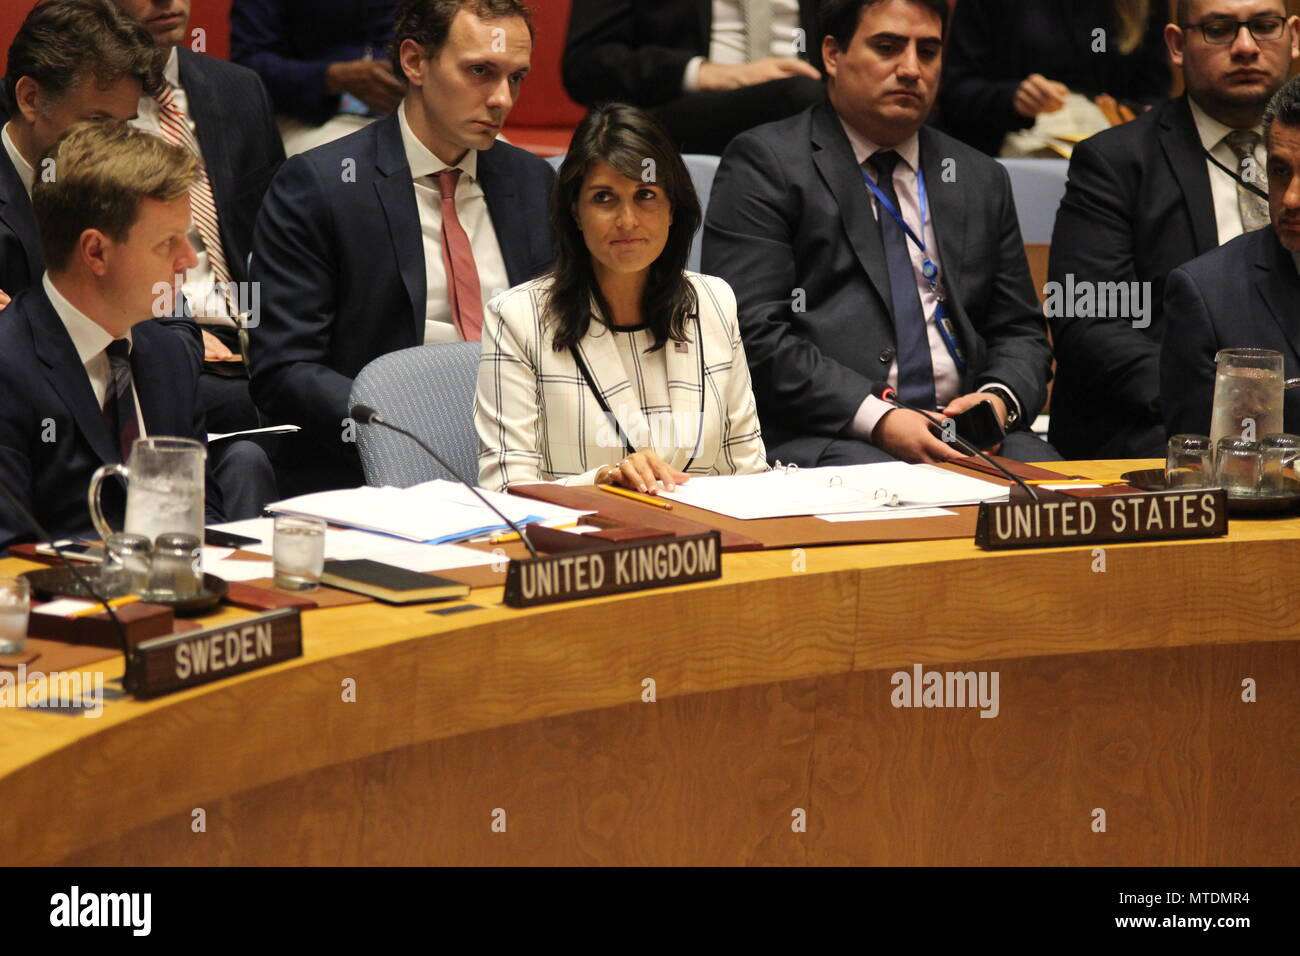 UN, New York, USA. 30th May, 2018. Nikki Haley, US Ambassador, spoke in UN Security Council about Iraq. Photo: Matthew Russell Lee / Inner City Press - Stock Image